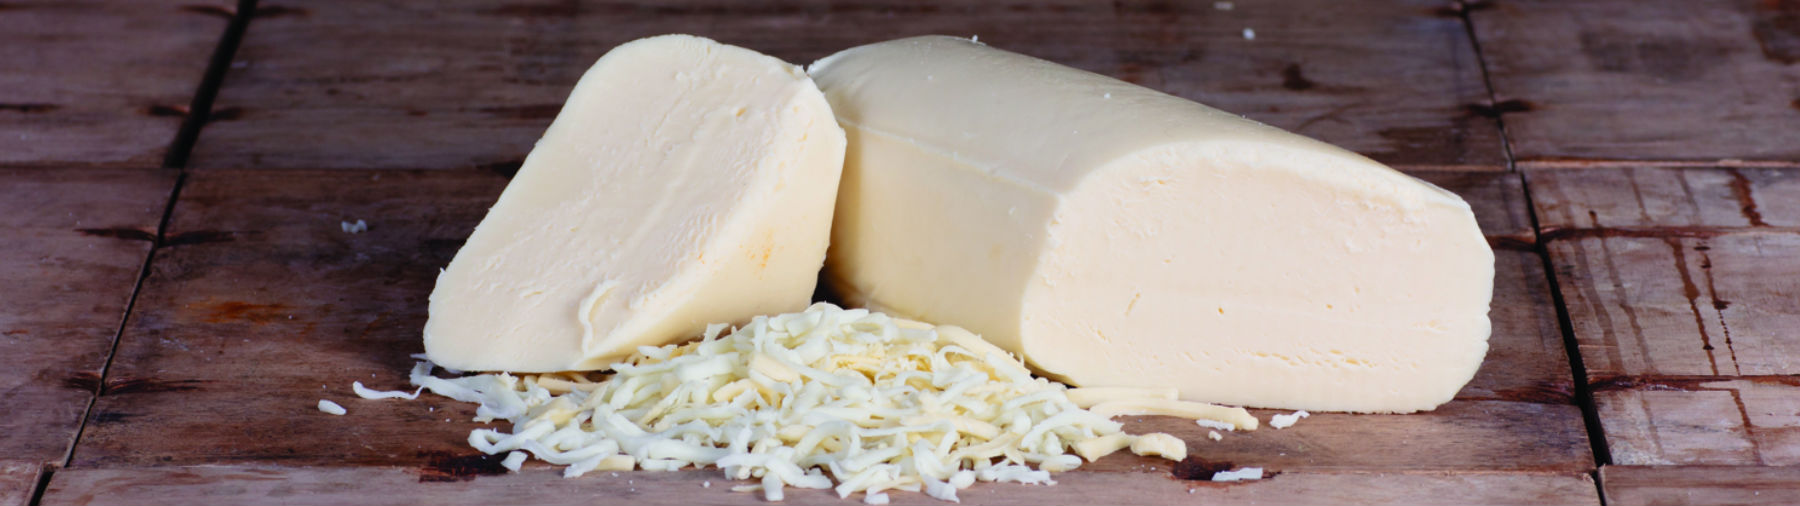 Fine Italian Cheese at Wholesale Prices - UK Supplier